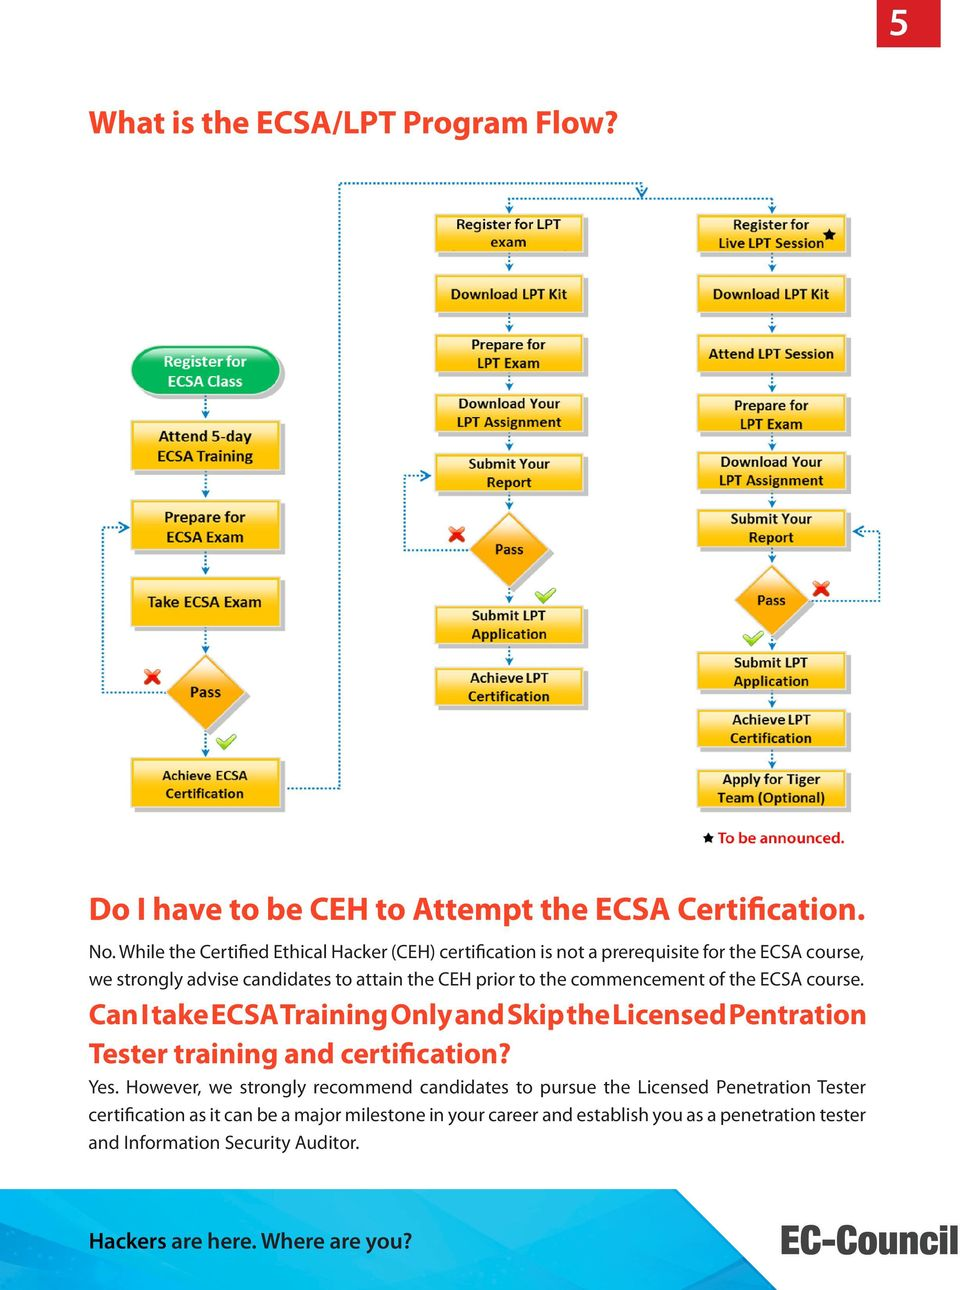 to the commencement of the ECSA course. Can I take ECSA Training Only and Skip the Licensed Pentration Tester training and certification? Yes.